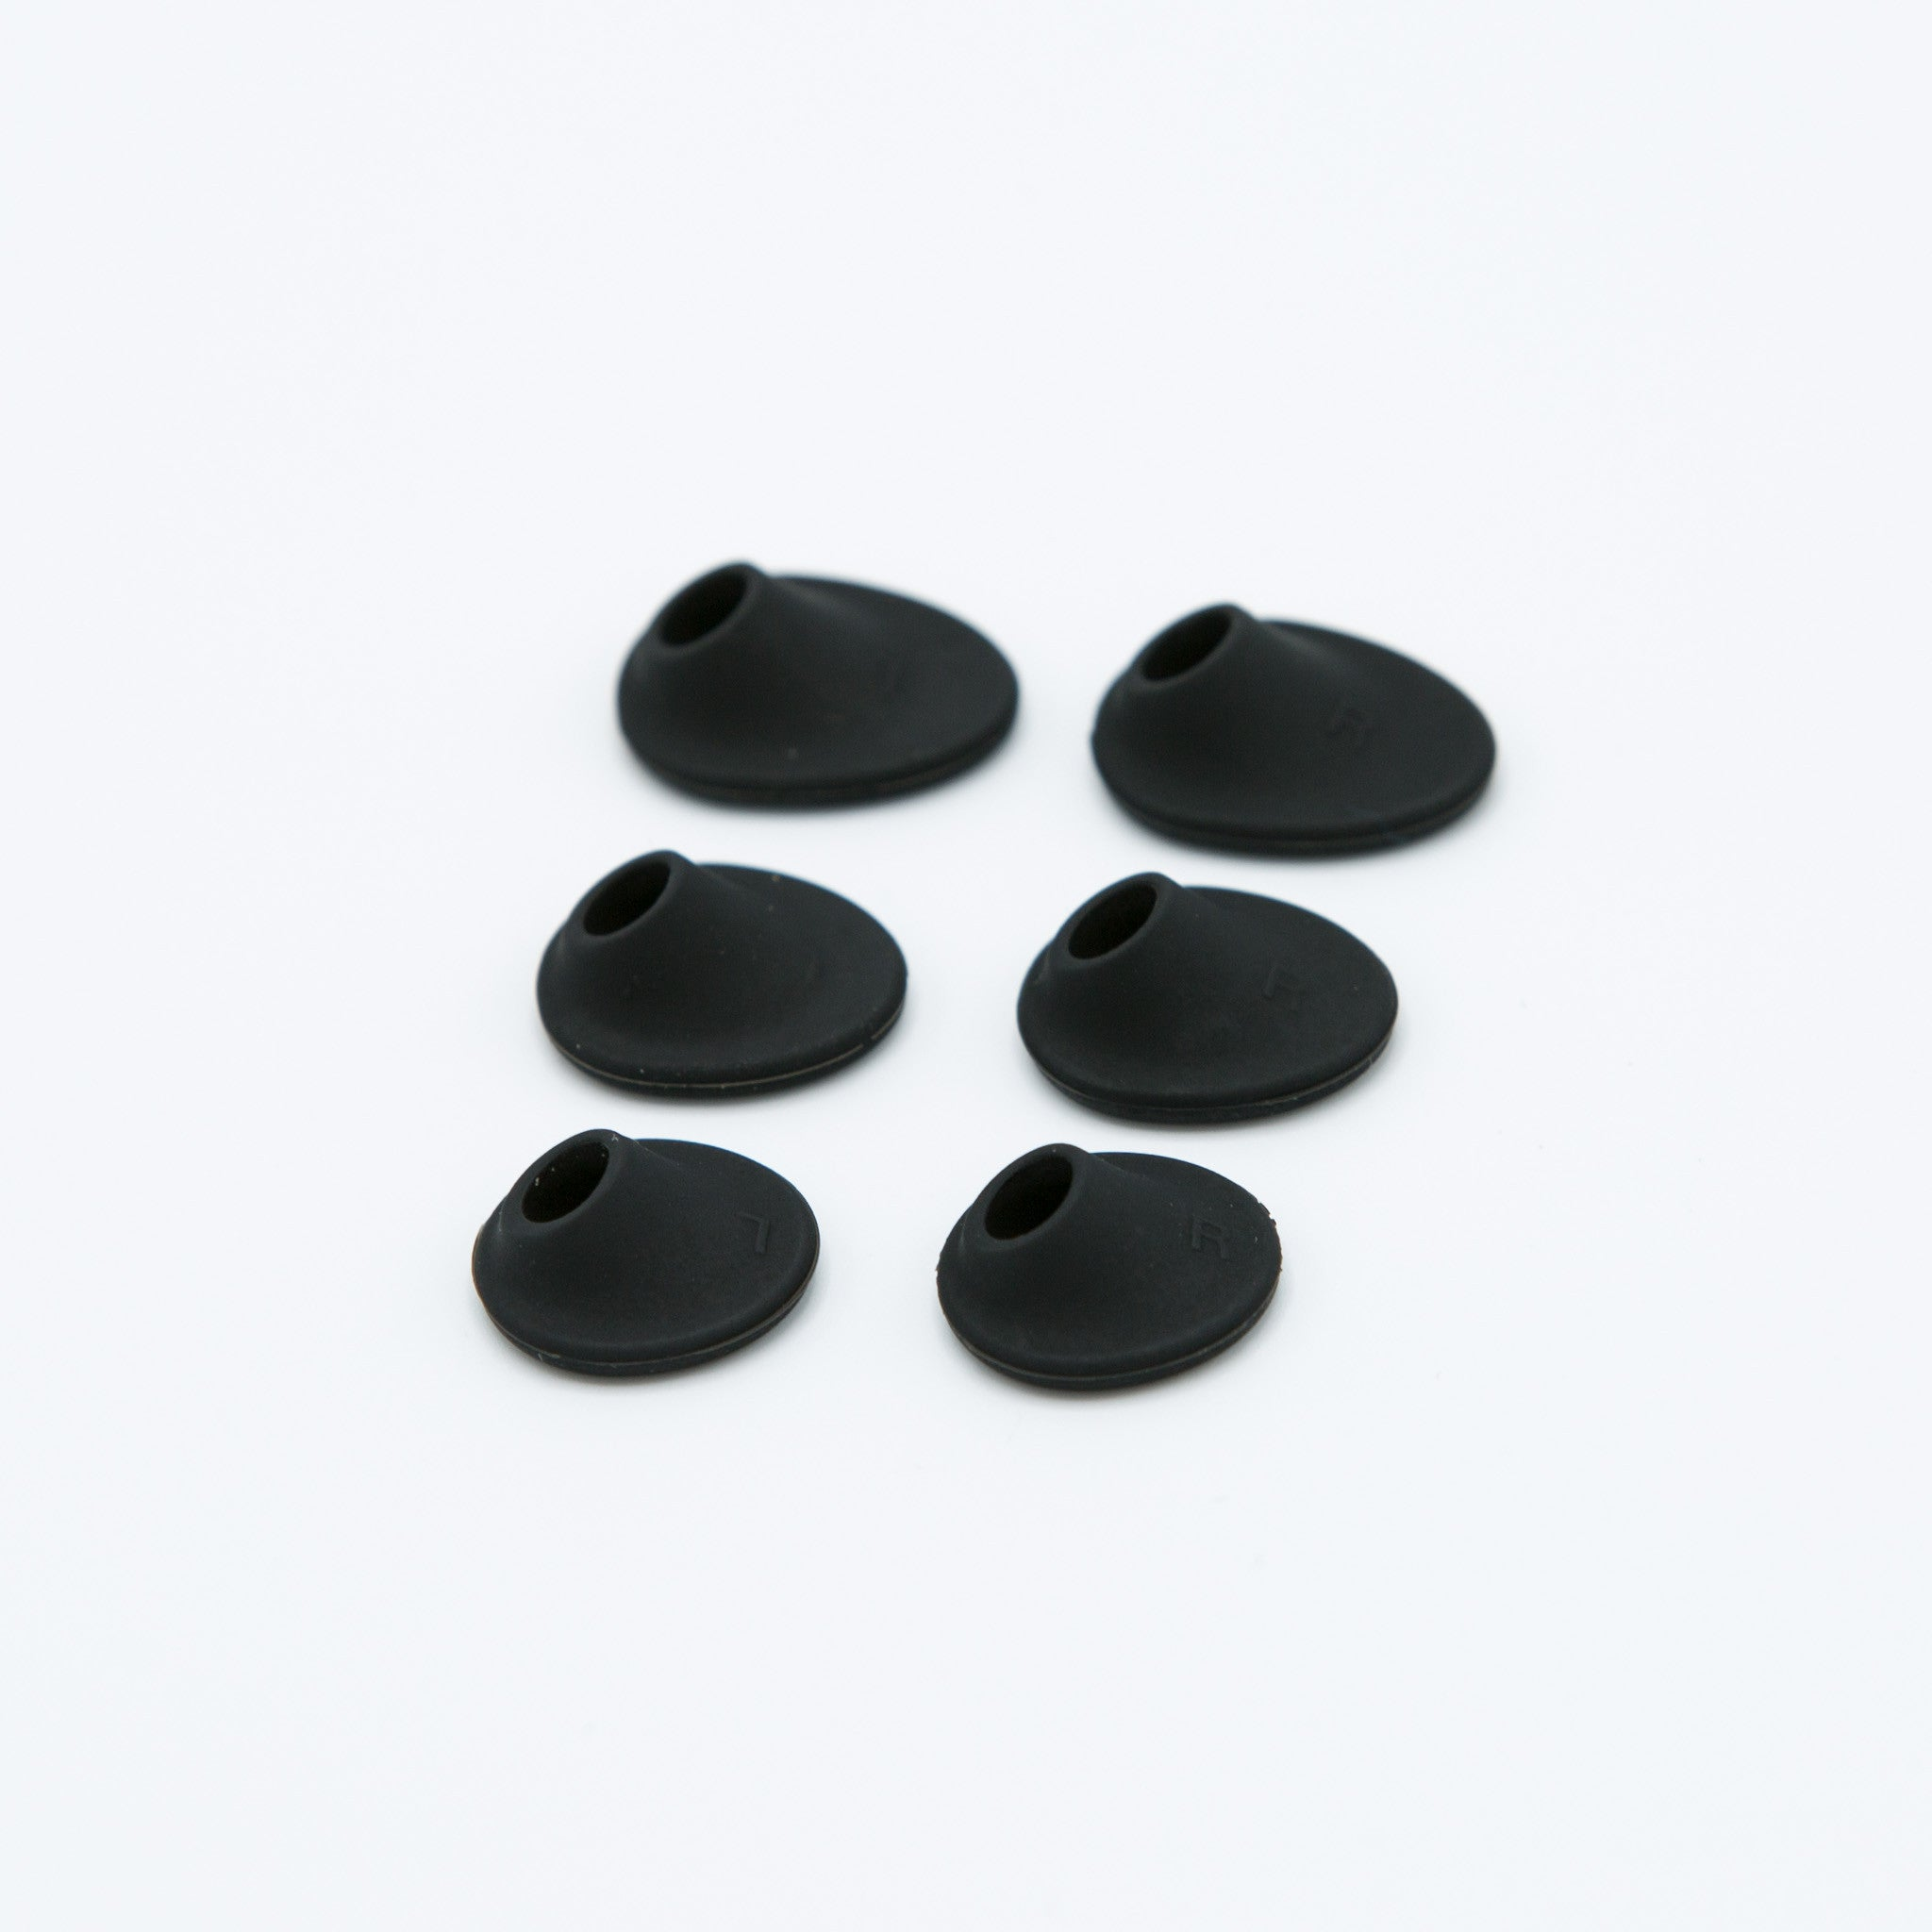 Black Silicone Earbud Stabilizers